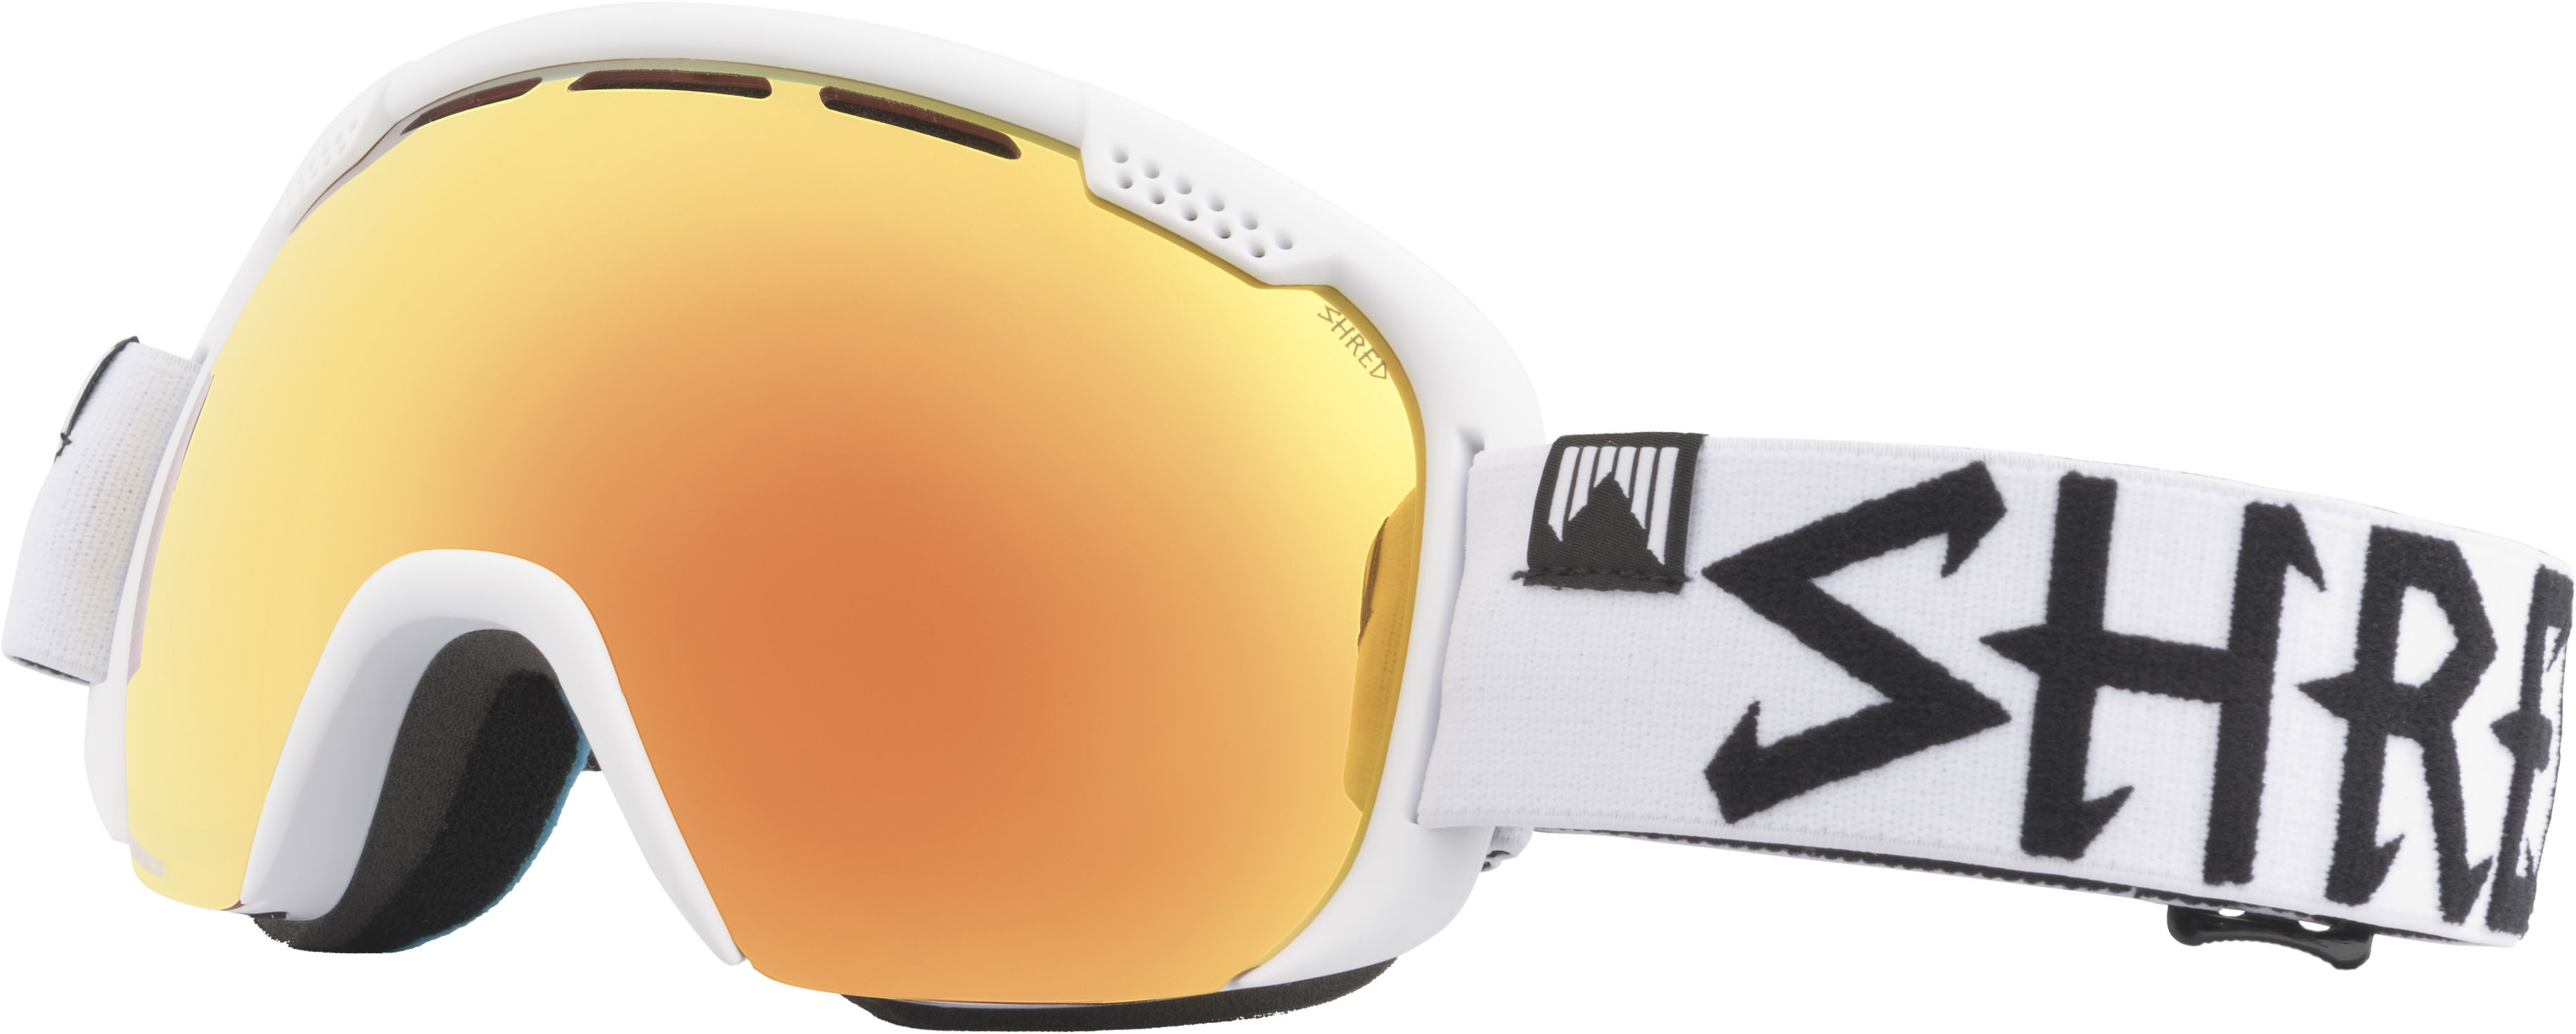 Shred Smartefy Whiteout goggles, 2018